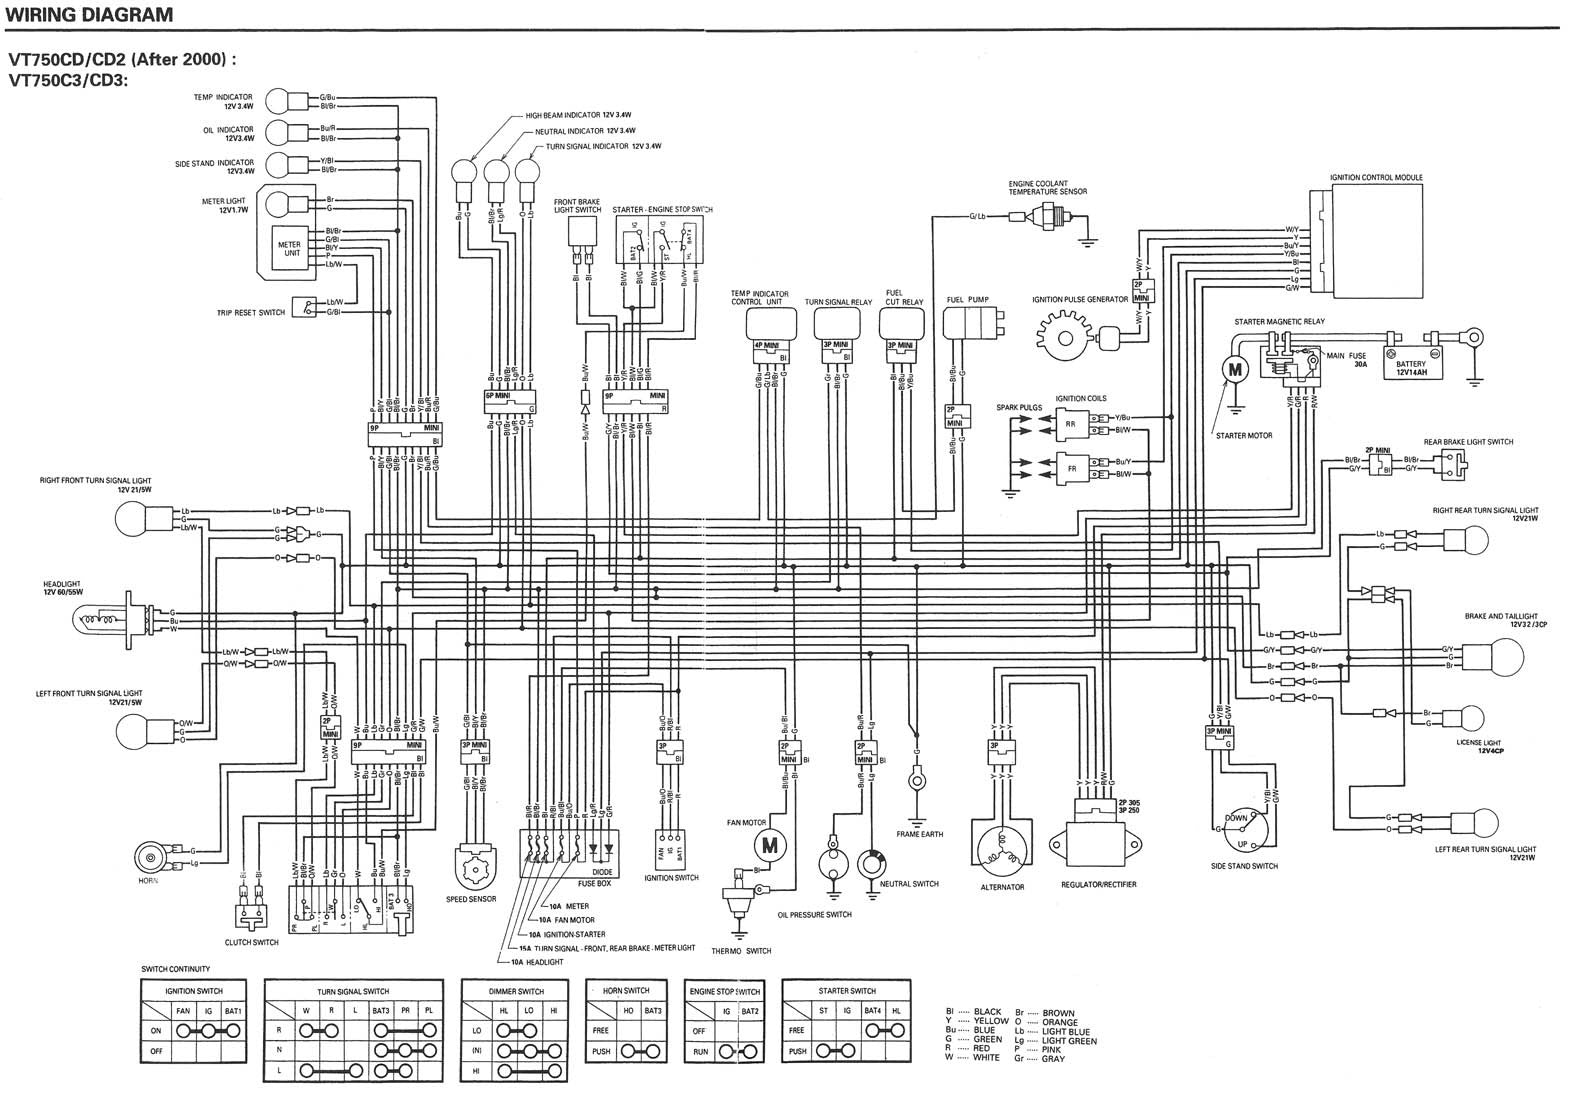 VT750_ACE_Wiring_Diagram_2001 2003_V.2?17490154244262524096 faq tj brutal customs 1985 honda shadow vt1100 wiring diagram at soozxer.org